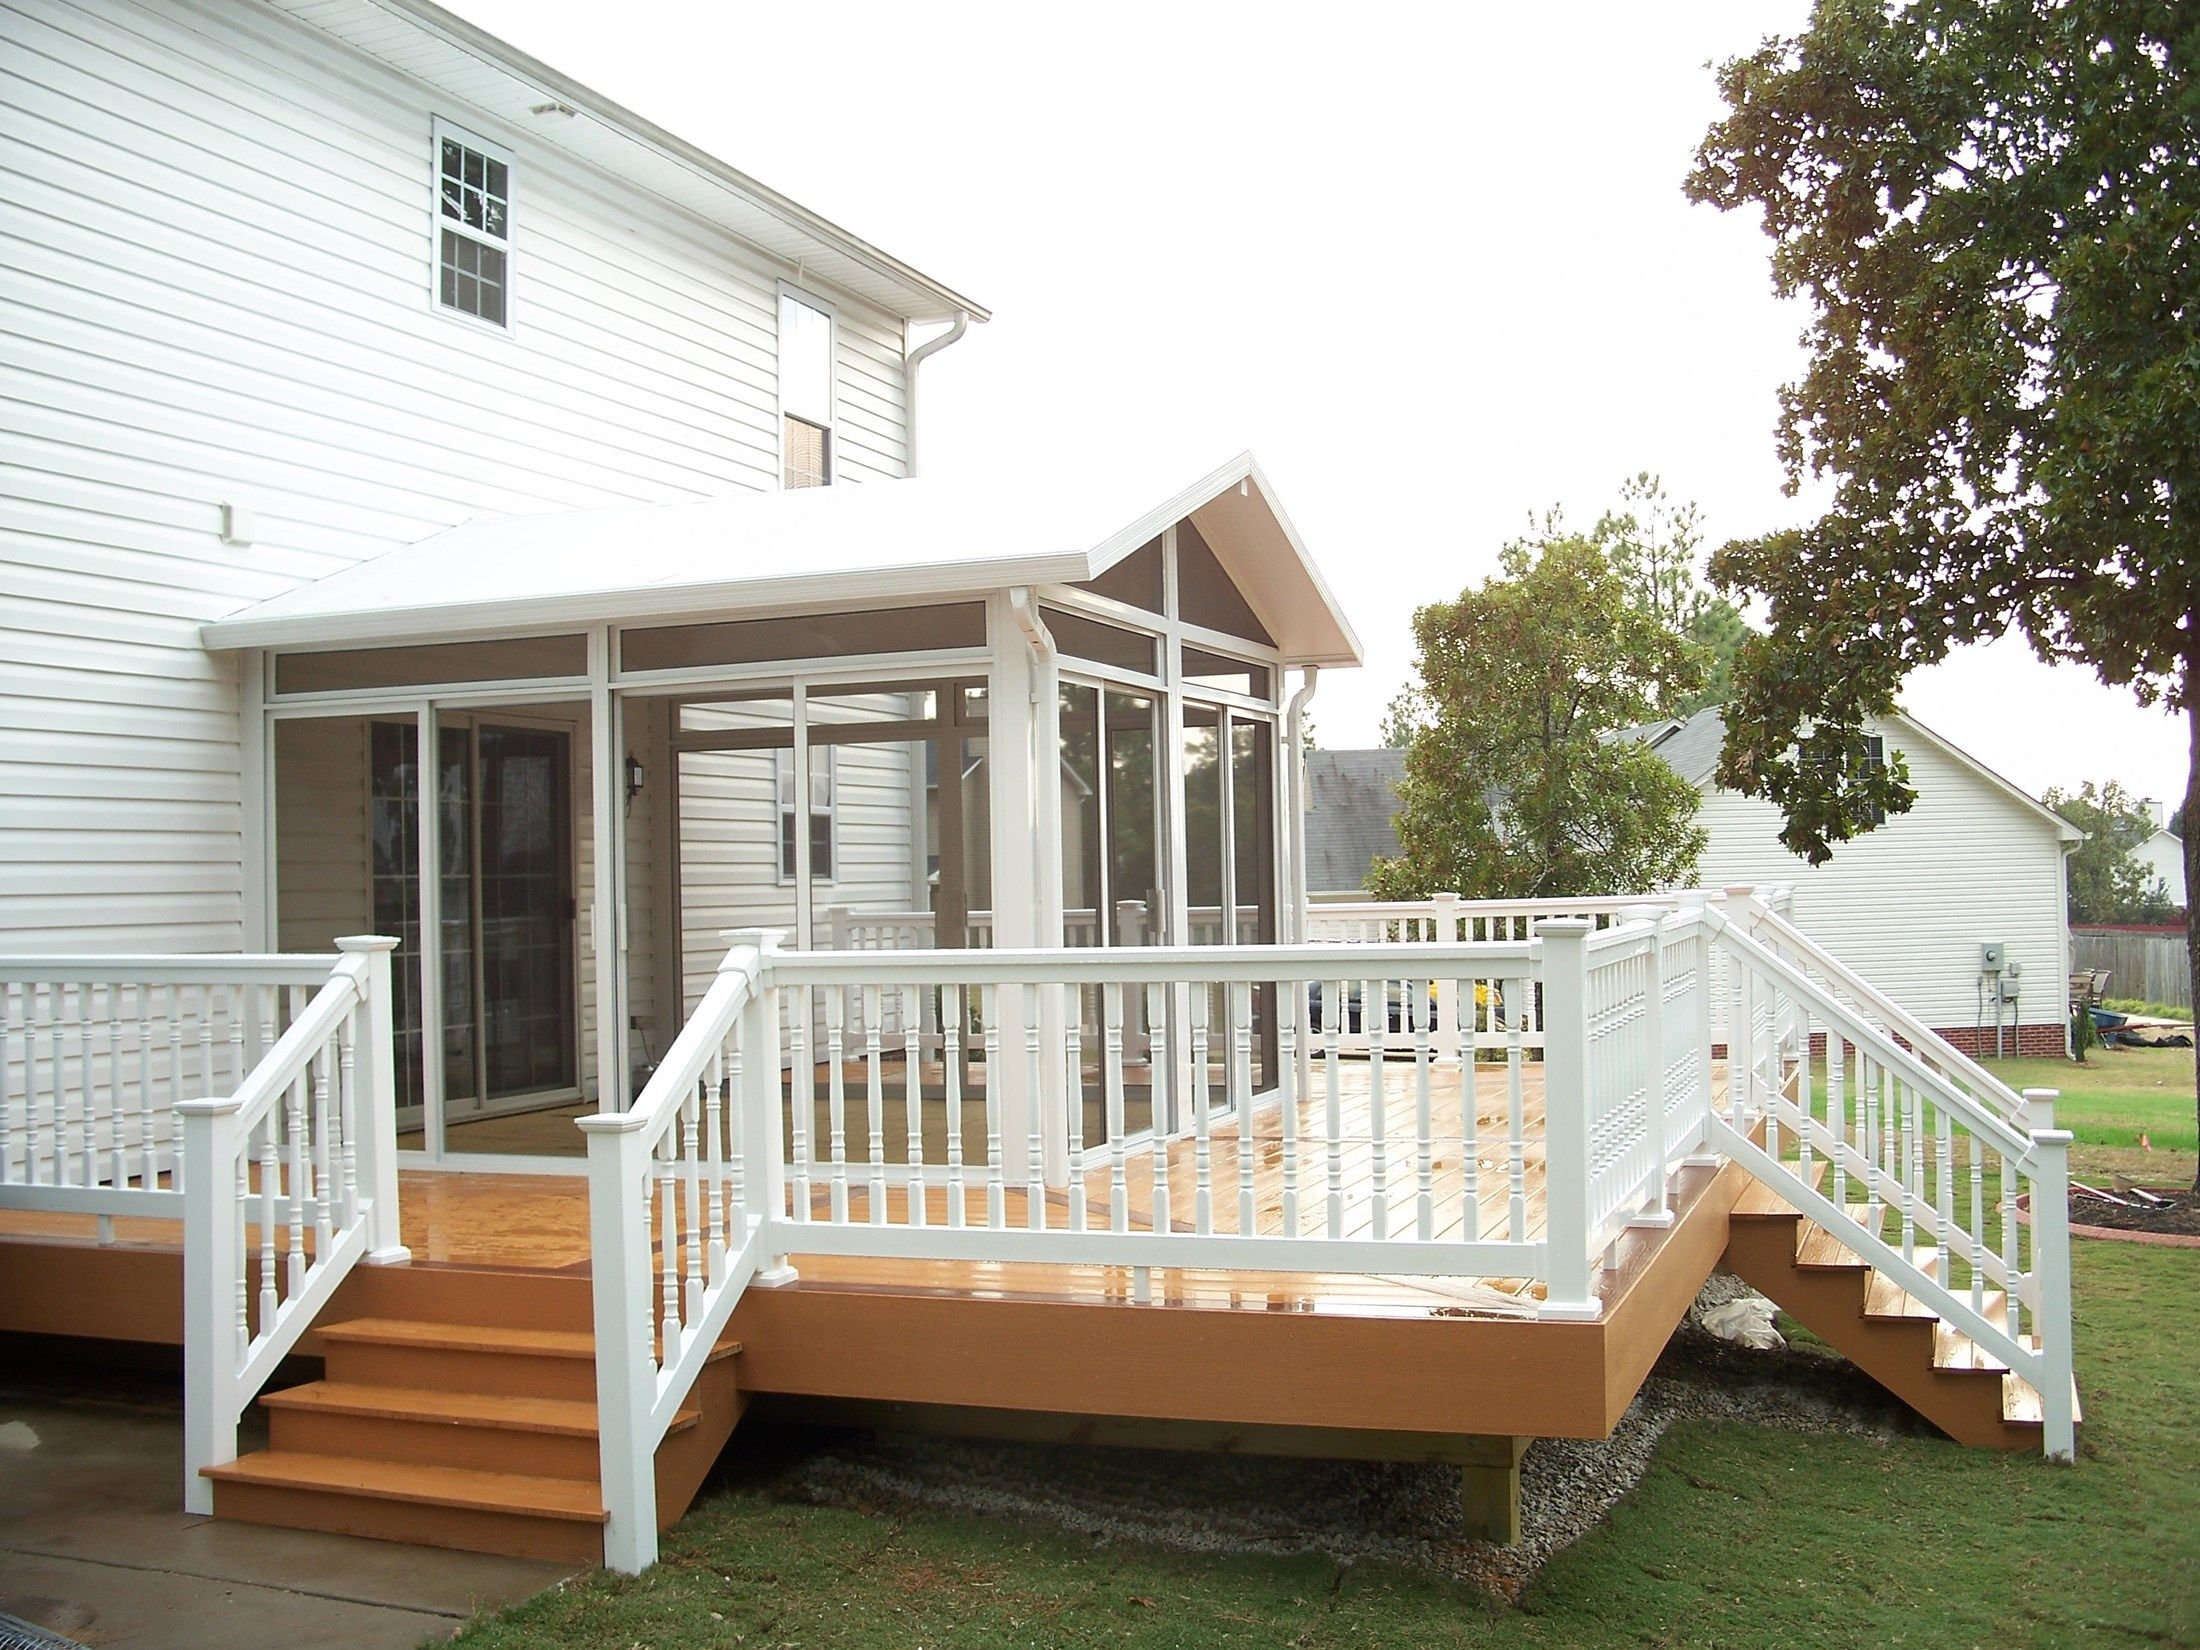 Custom Built Deck - Trex - Picture 7424